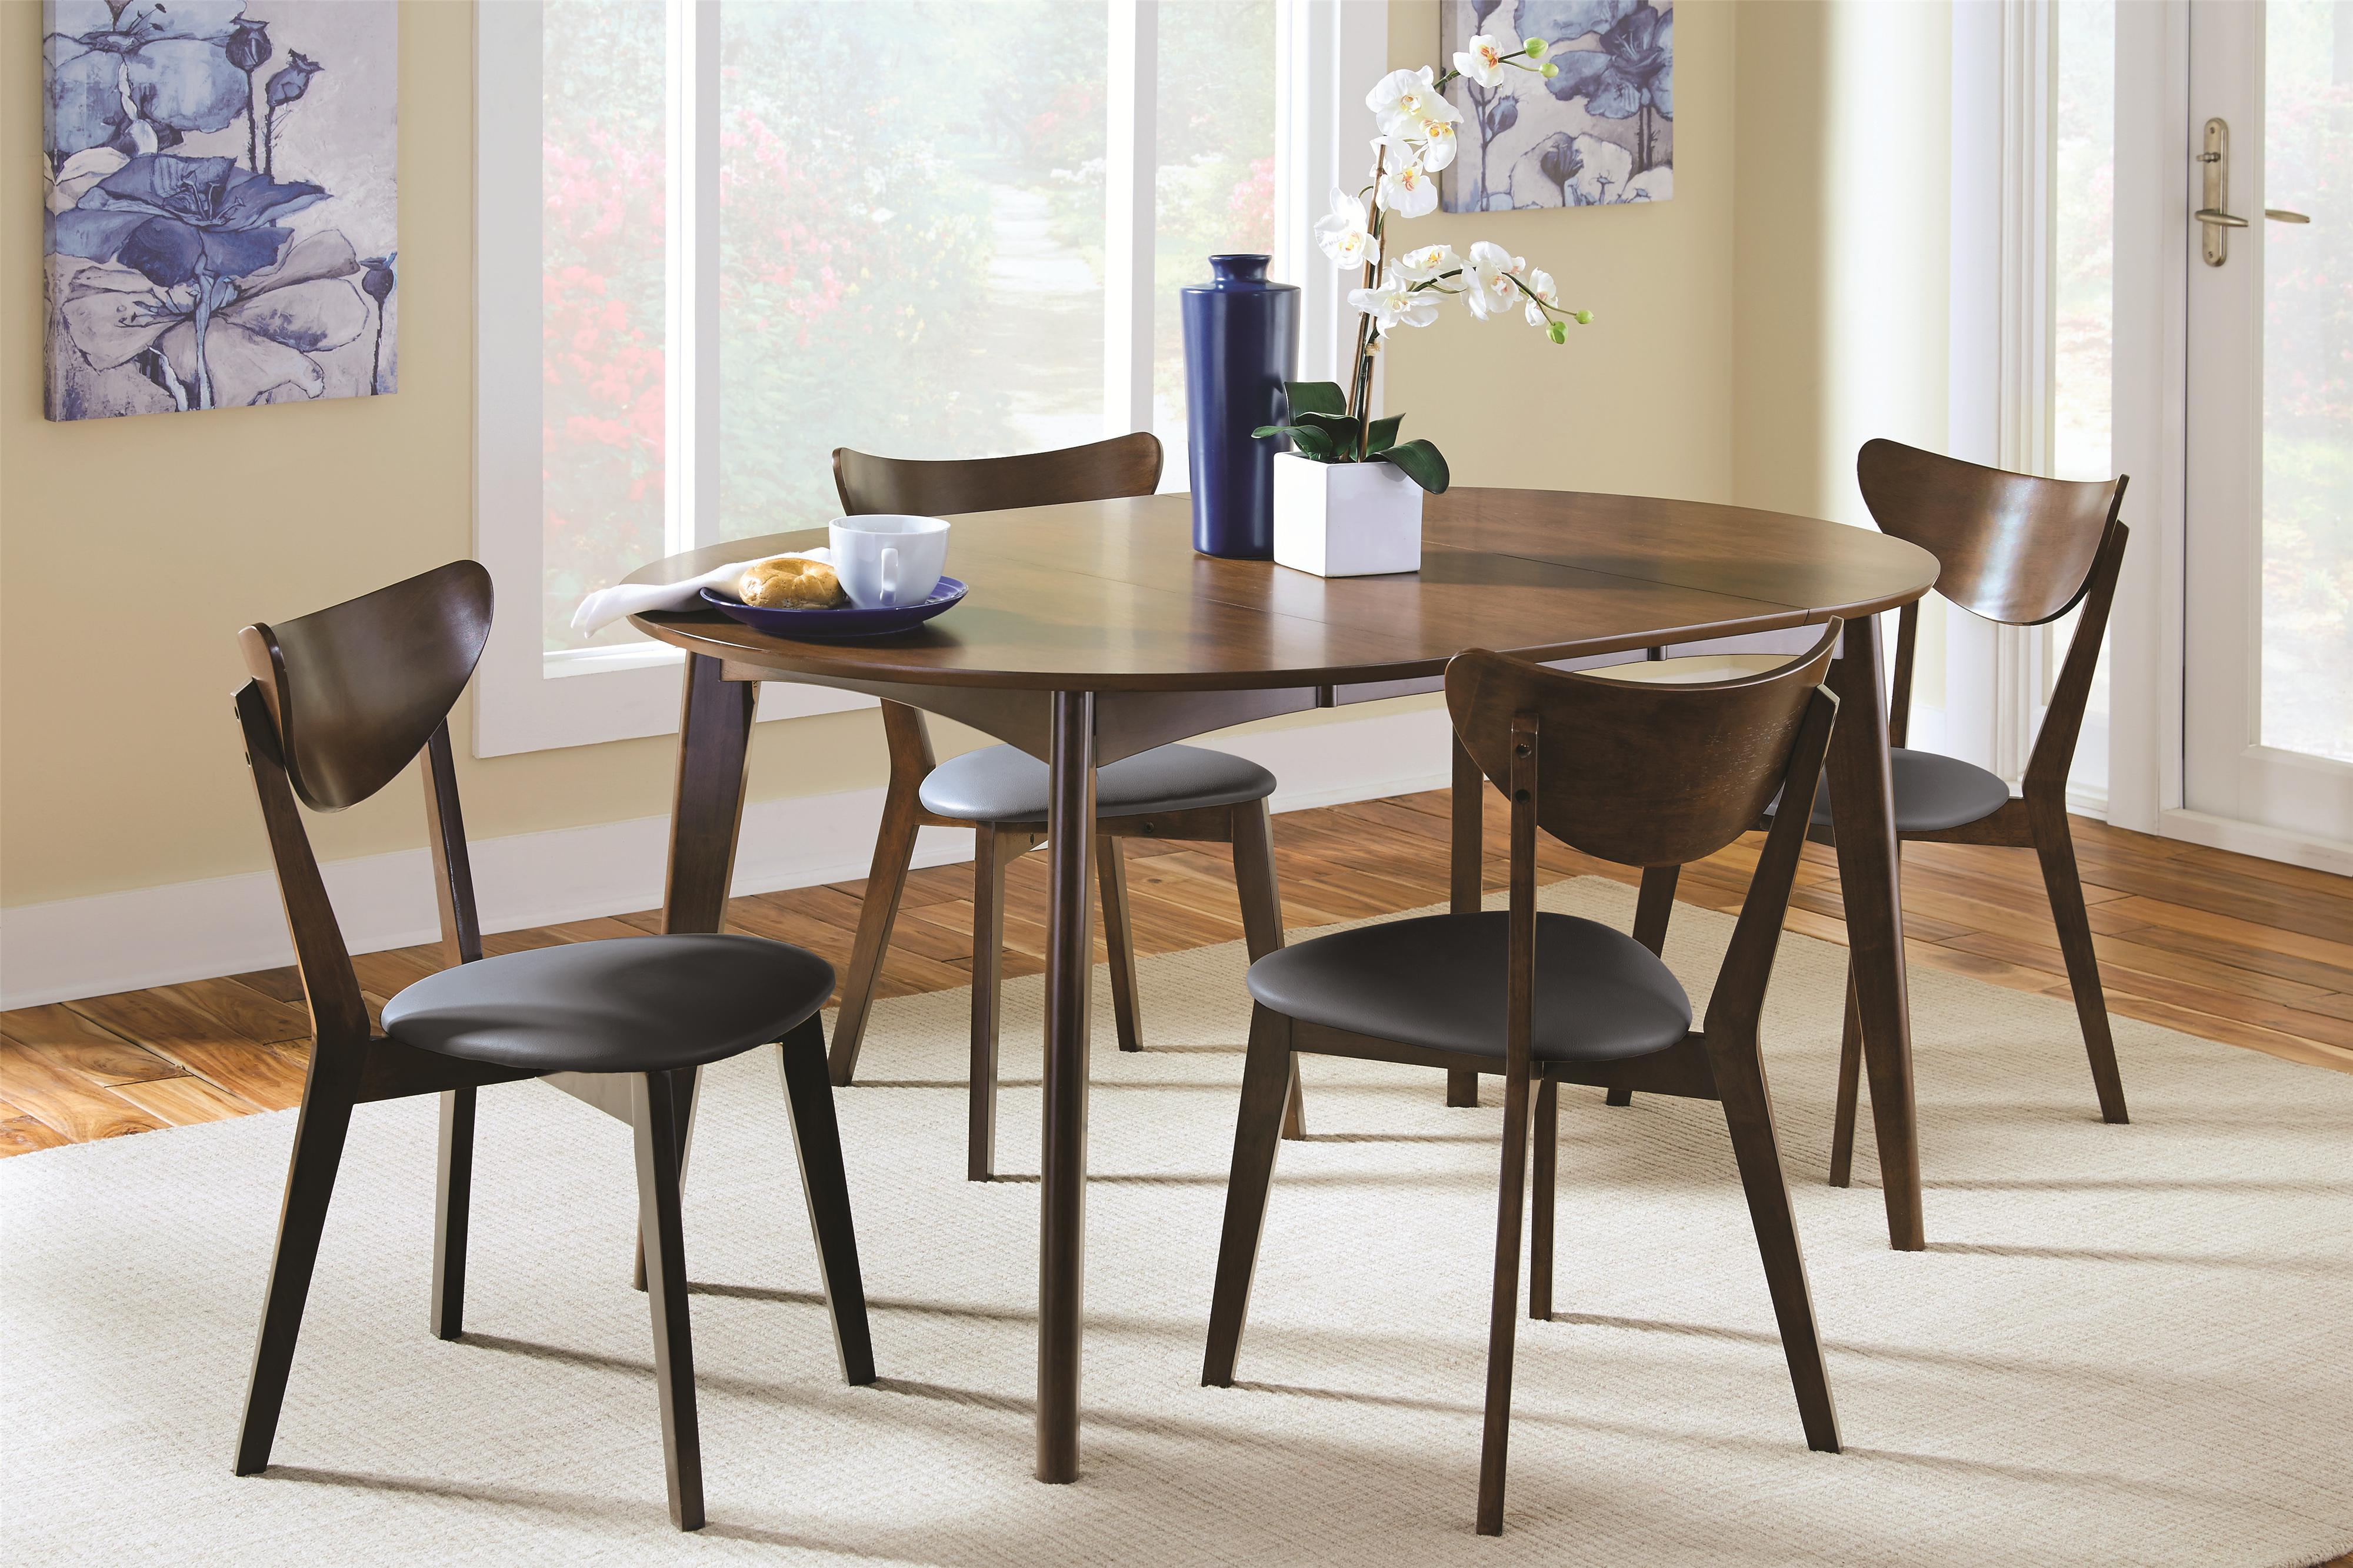 Furniture Dining Room Chairs design kitchen New in House Designer Room